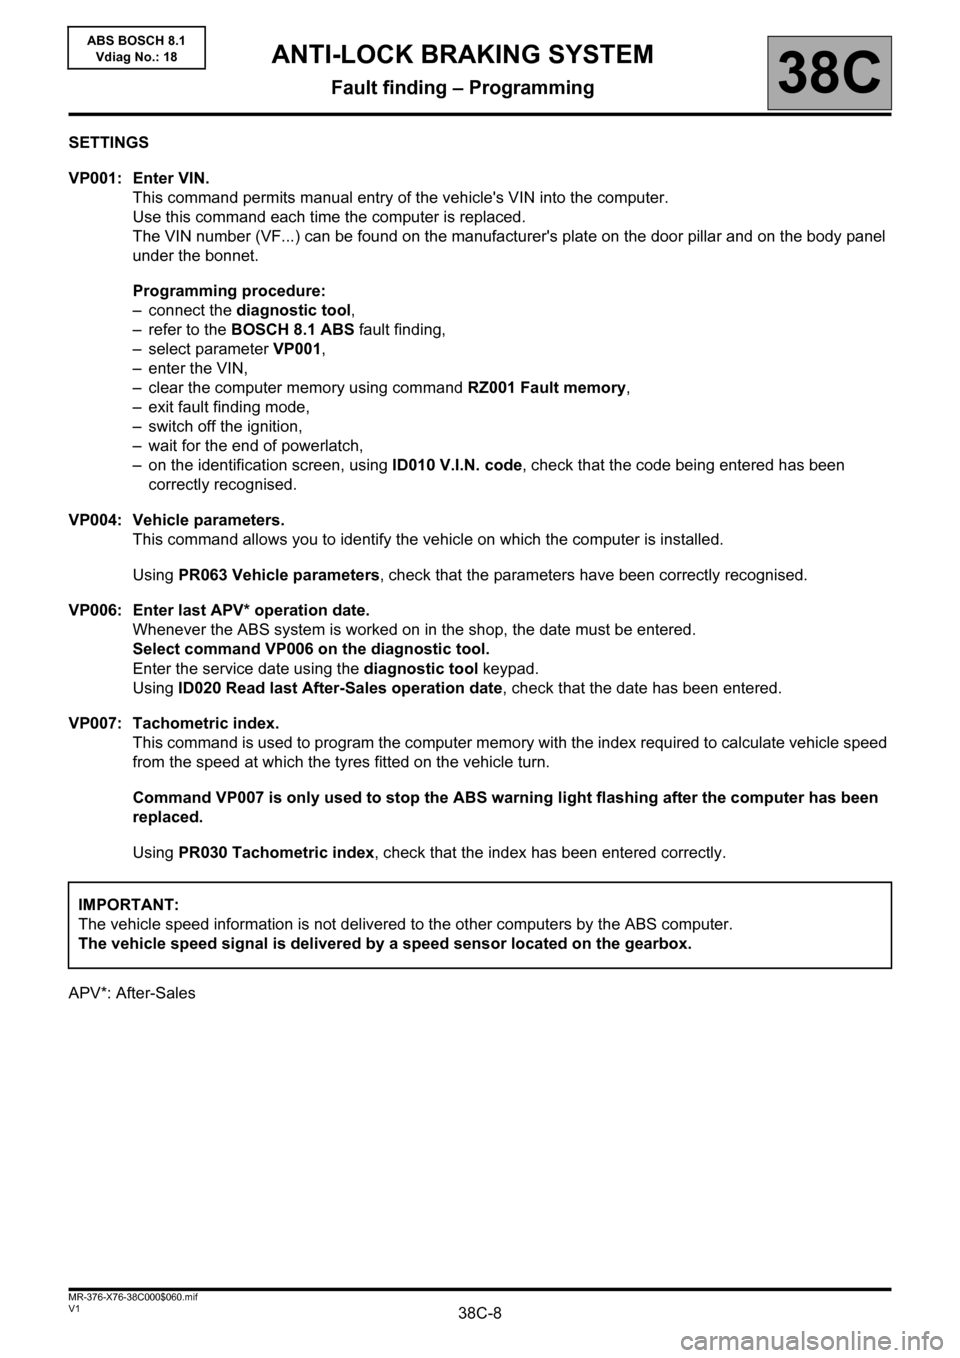 RENAULT KANGOO 2013 X61 / 2.G ABS Bosch 8.1 Workshop Manual, Page 8